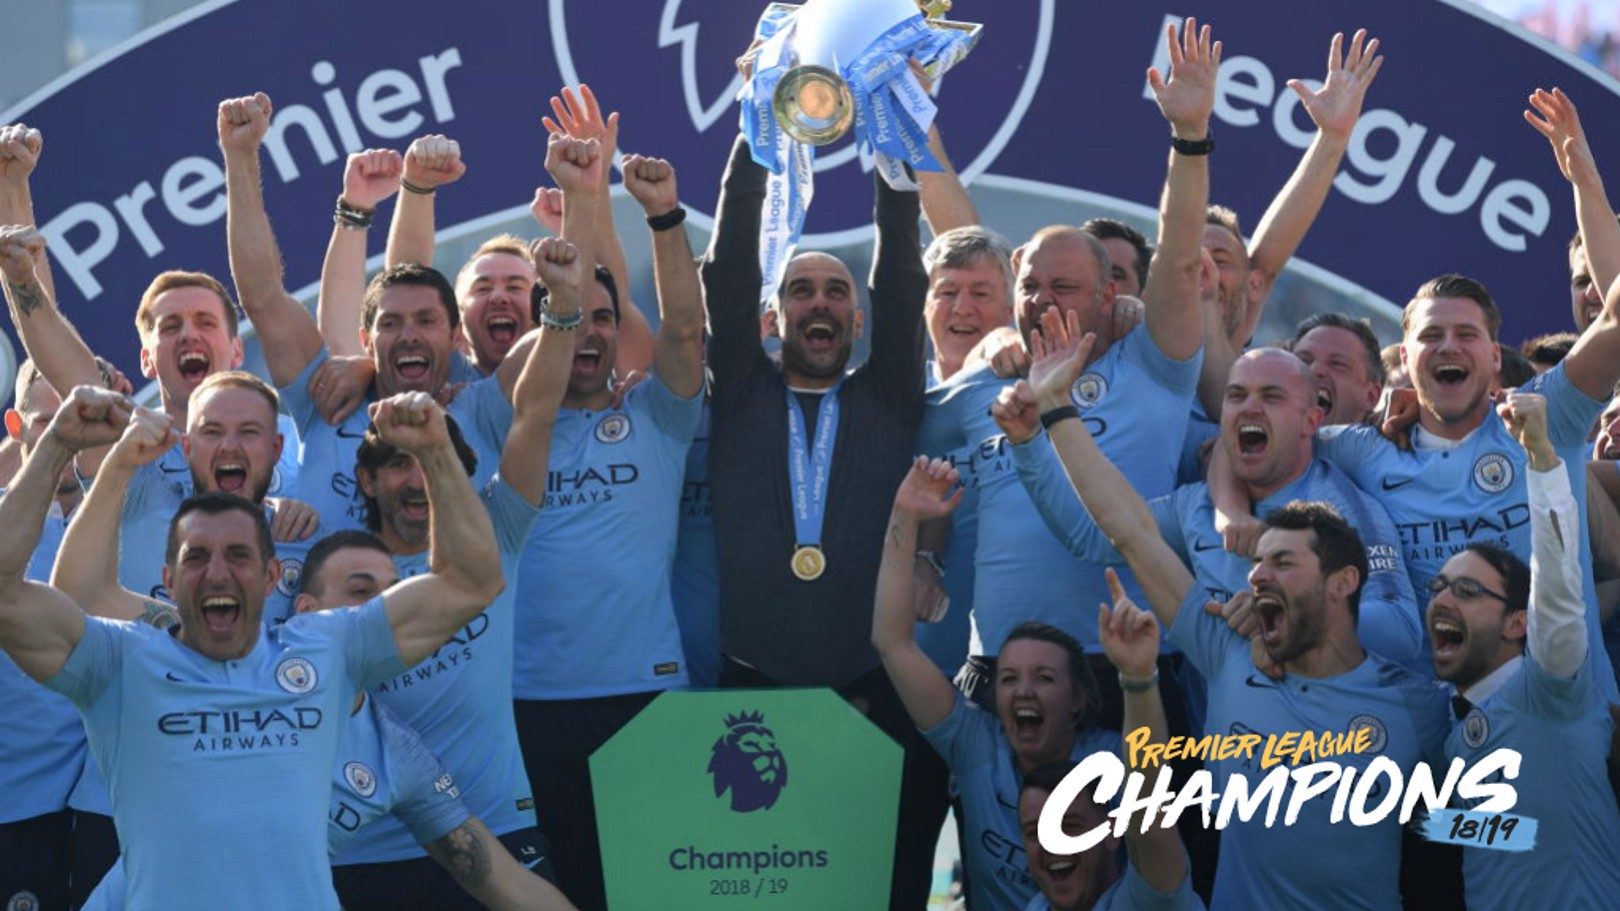 CHAMPIONS: Pep Guardiola lifts the trophy aloft.